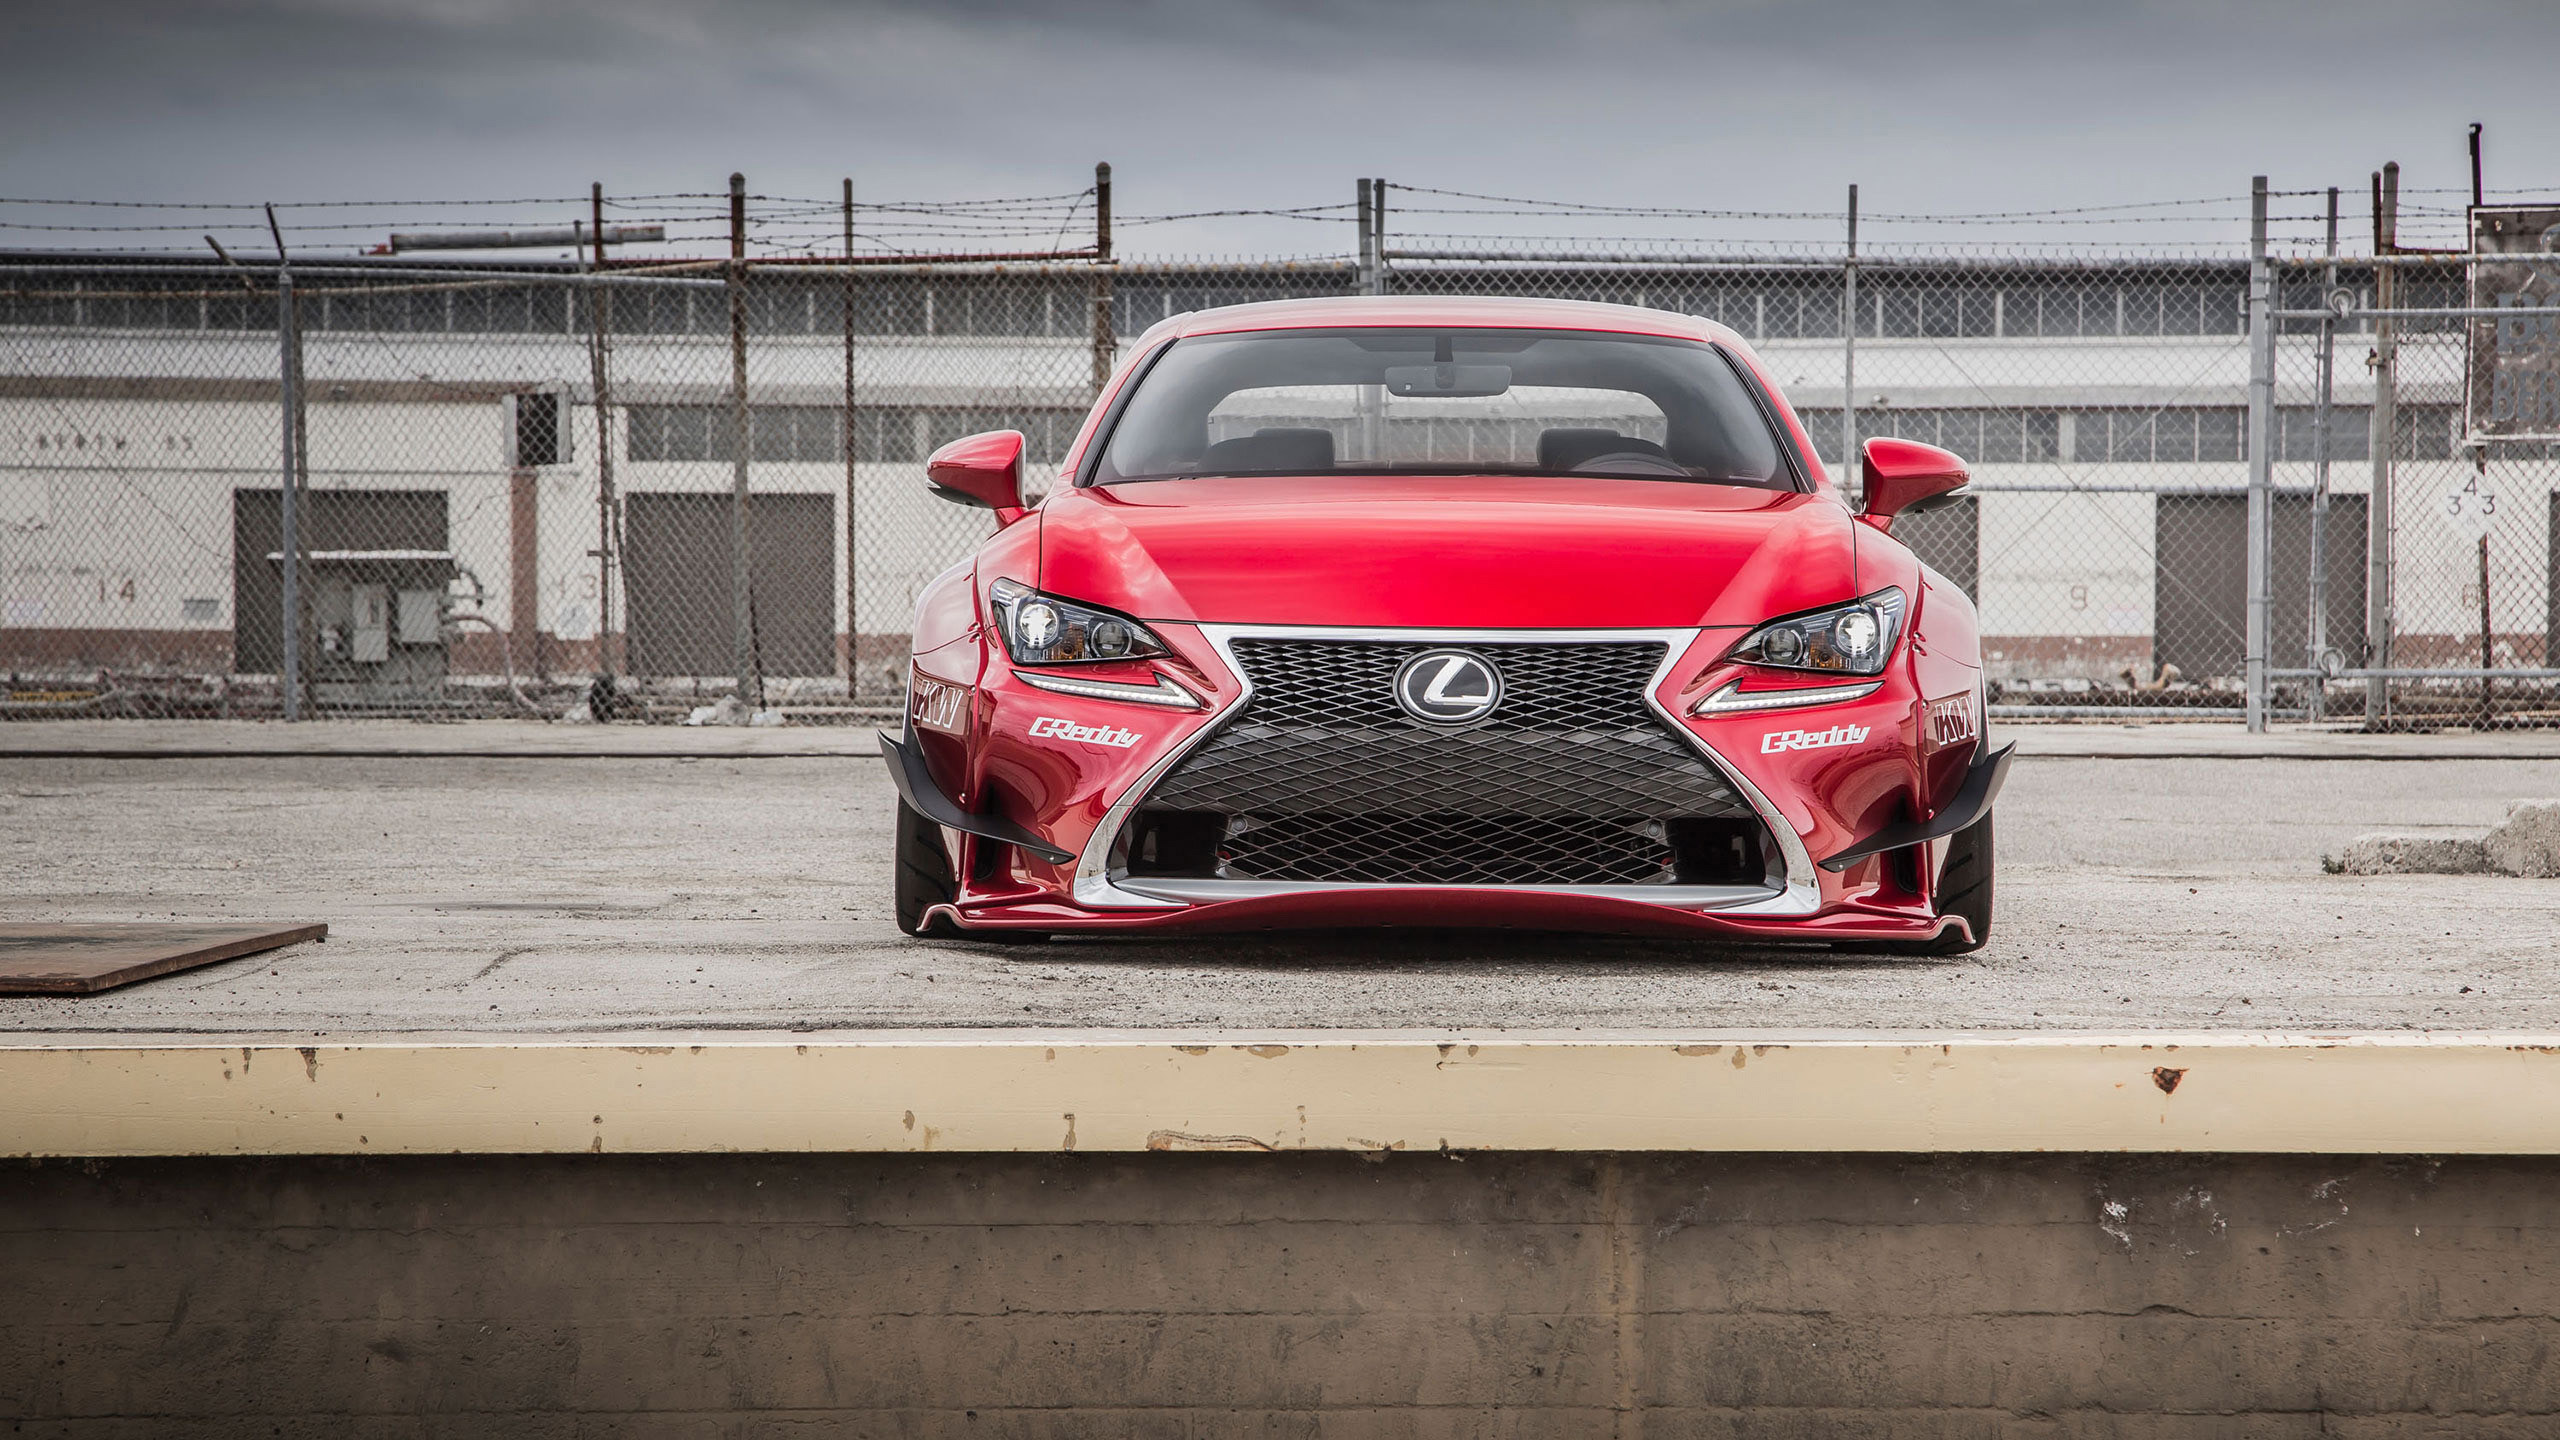 Res: 2560x1440, Tags: Sport Lexus Rocket Bunny